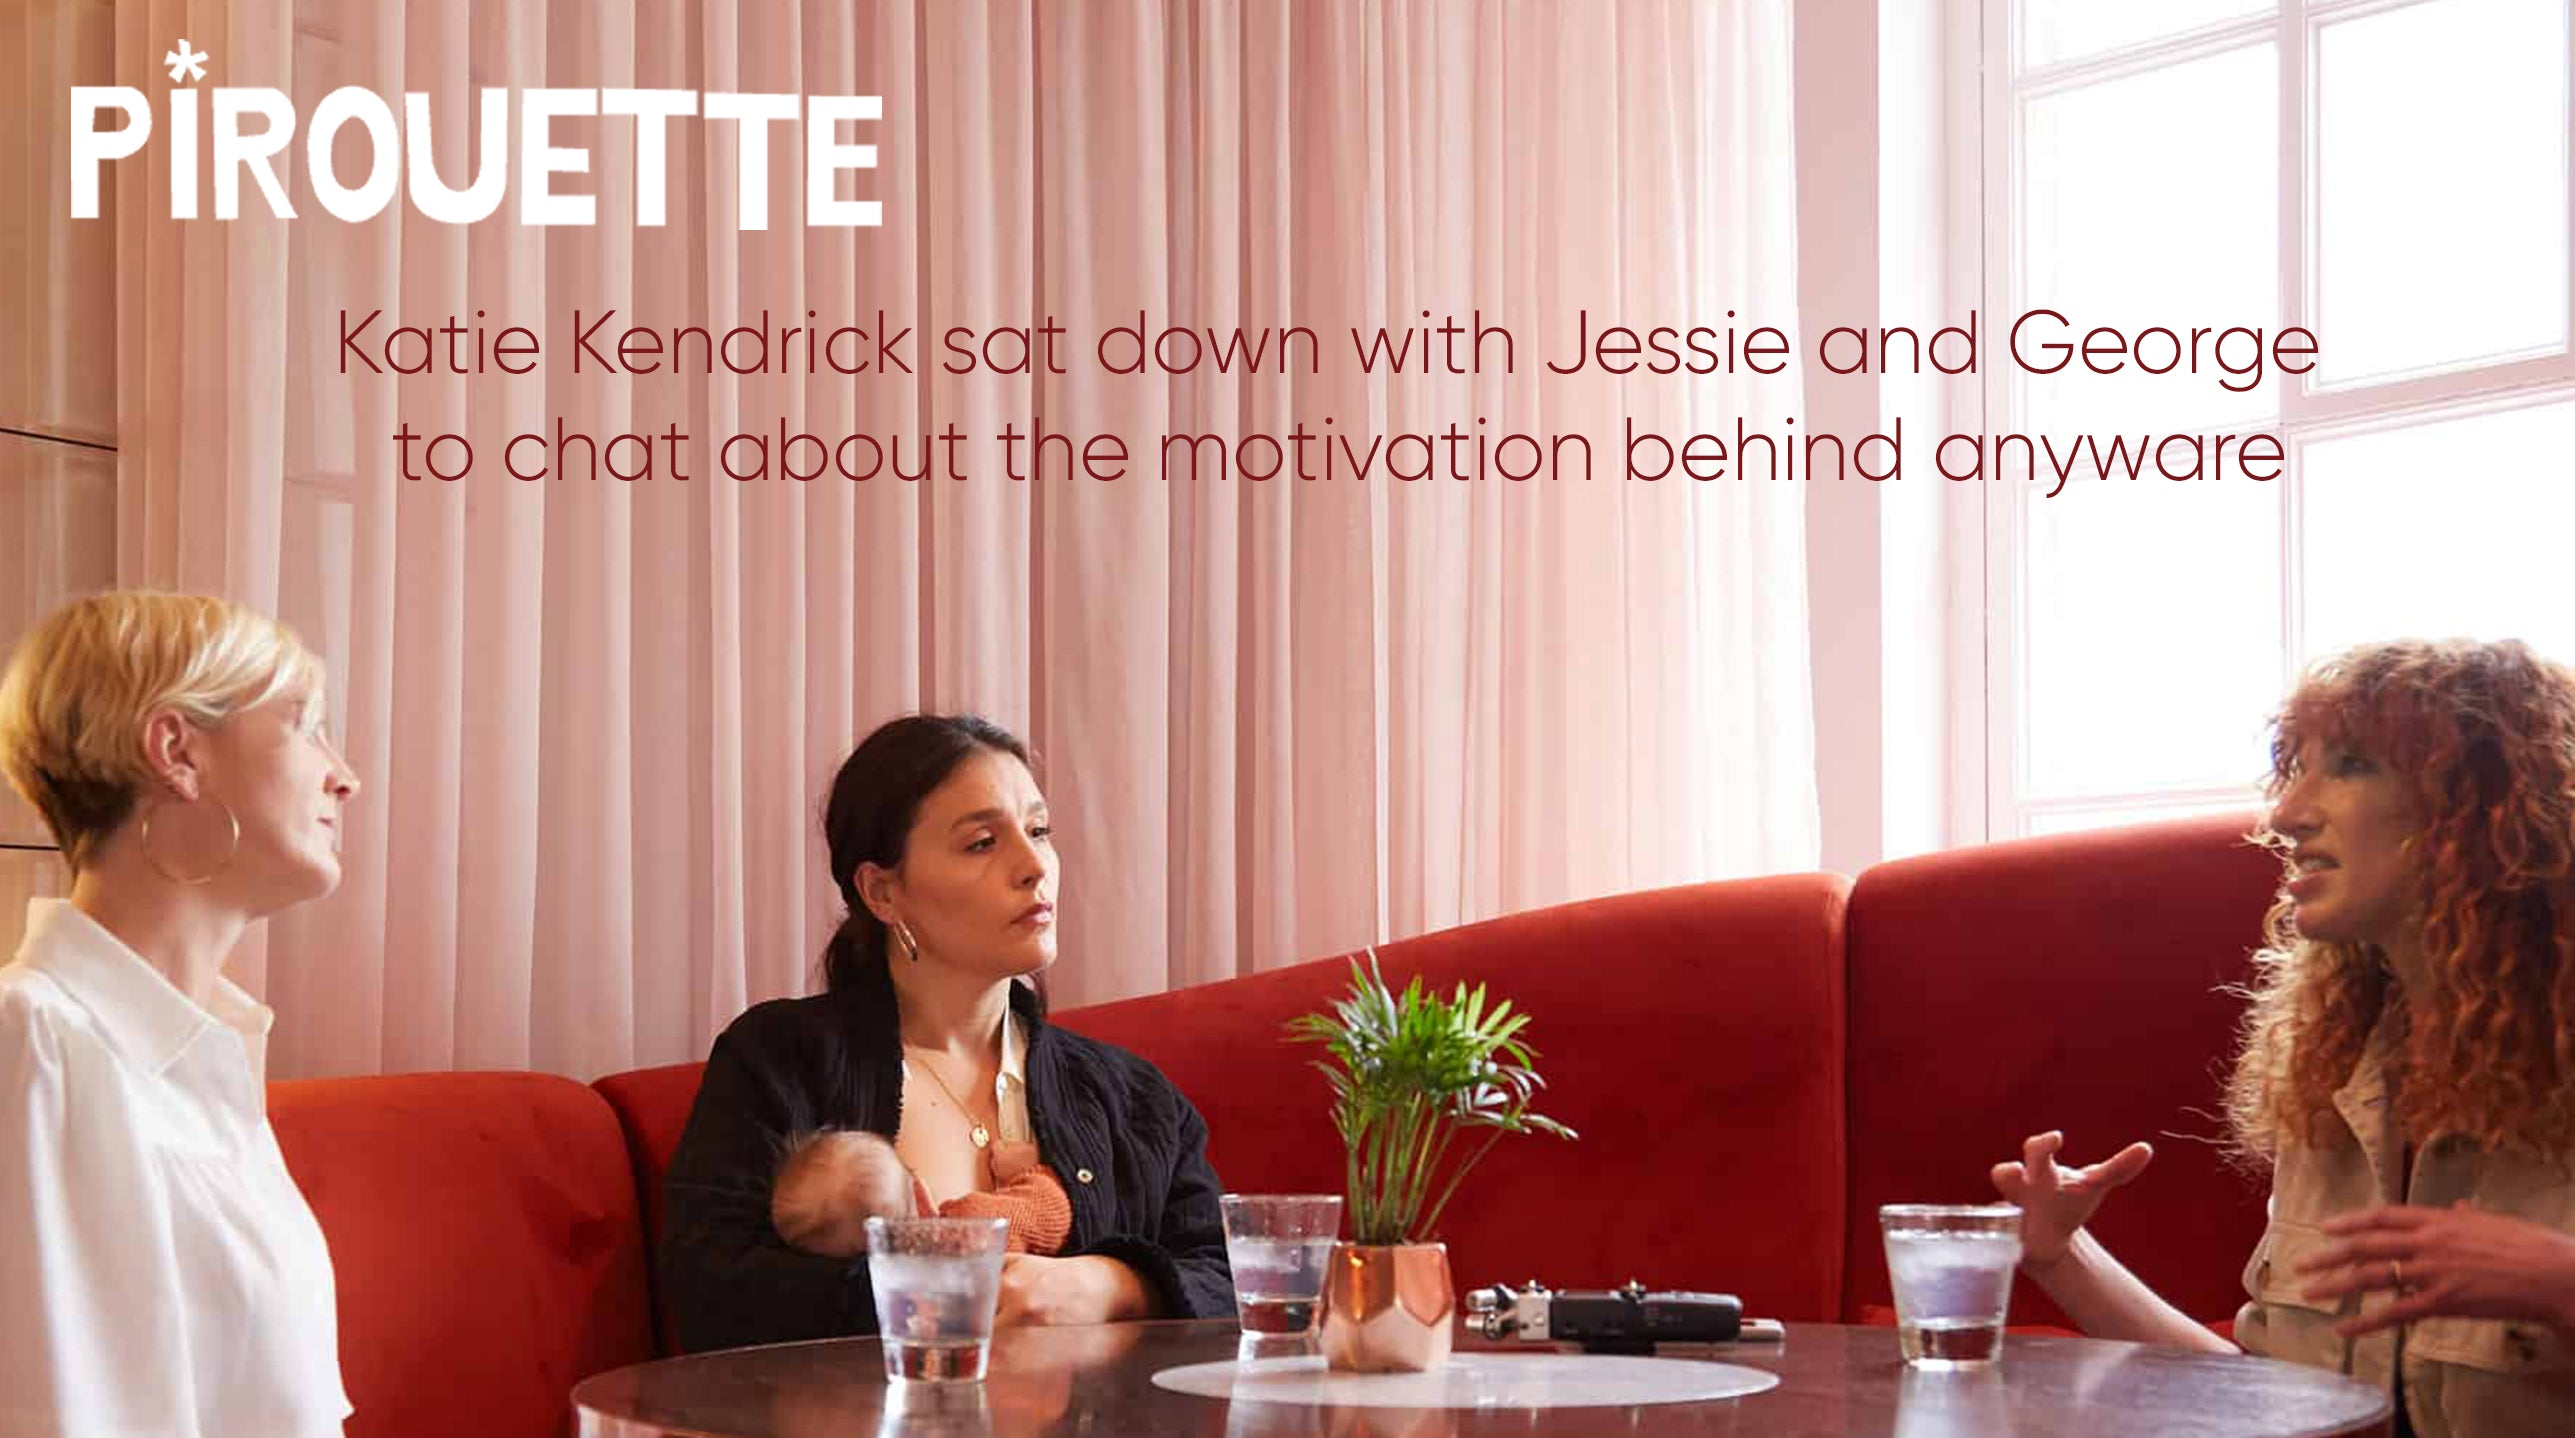 Pirouette journalist Katie Hendrick chats to Jessie and George